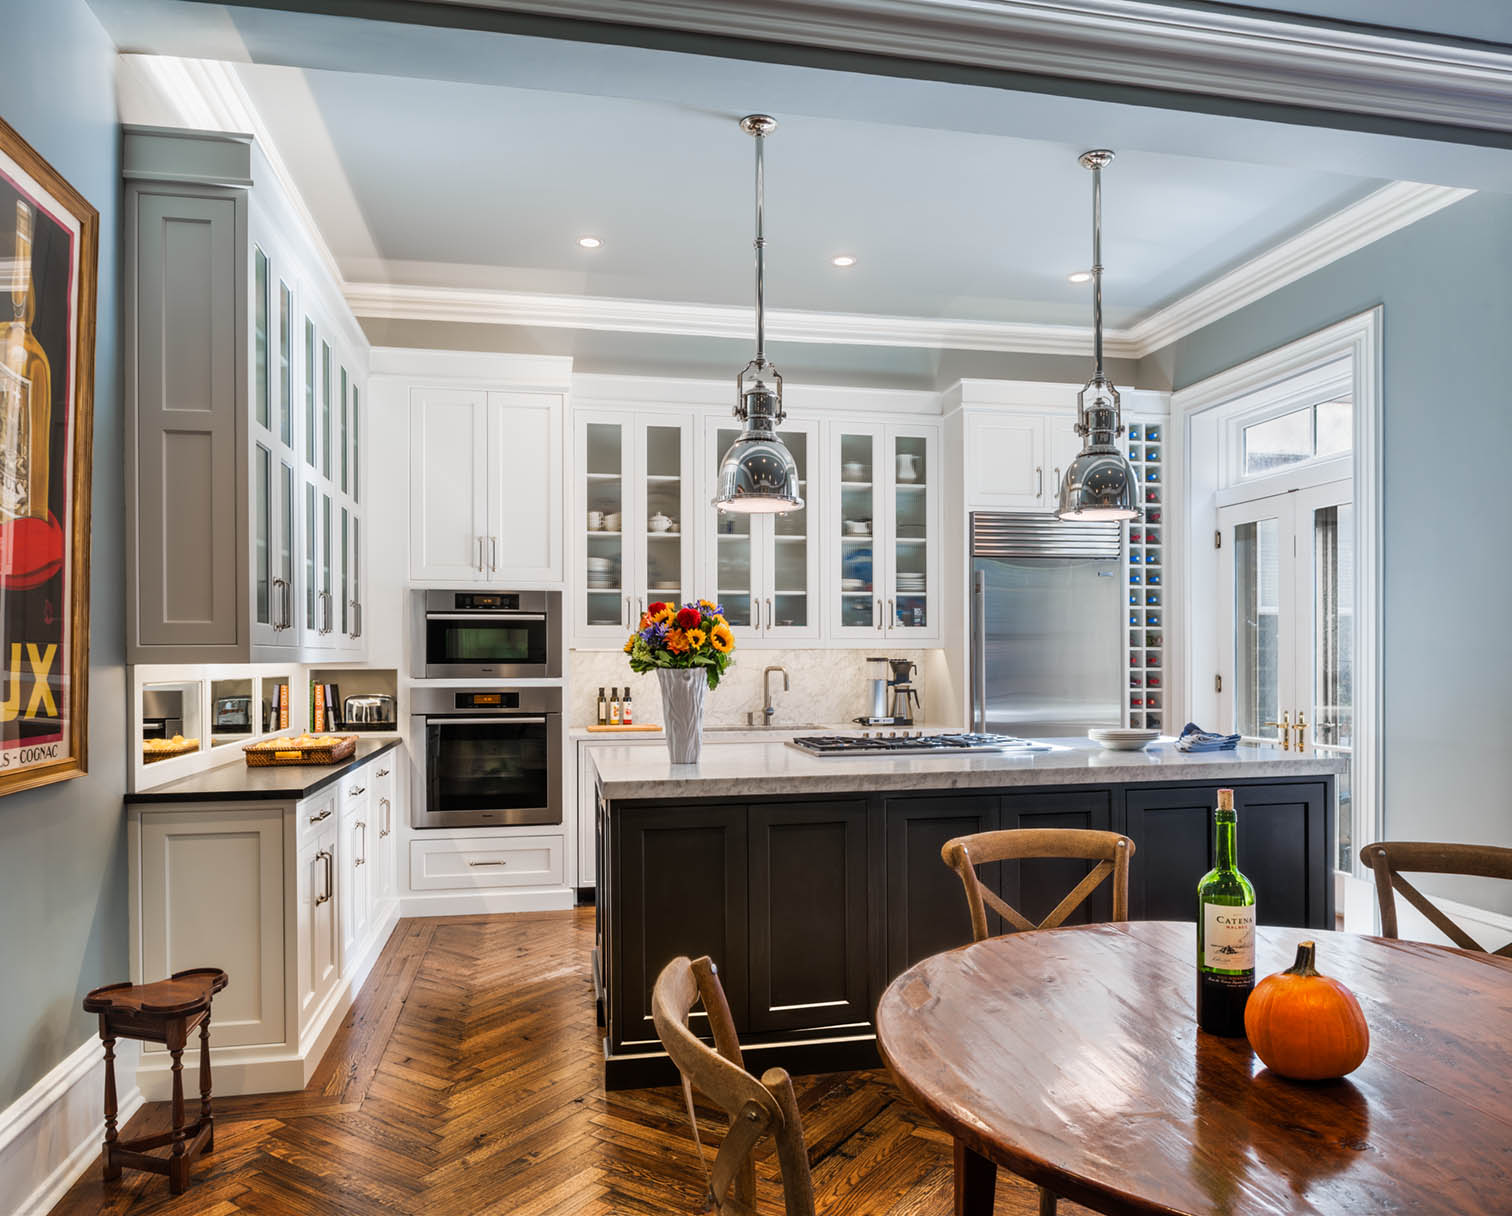 Why You Should Consult A Contractor Before Buying A Home You Plan To Renovate Residential Commercial Construction Pa Philadelphia Blog